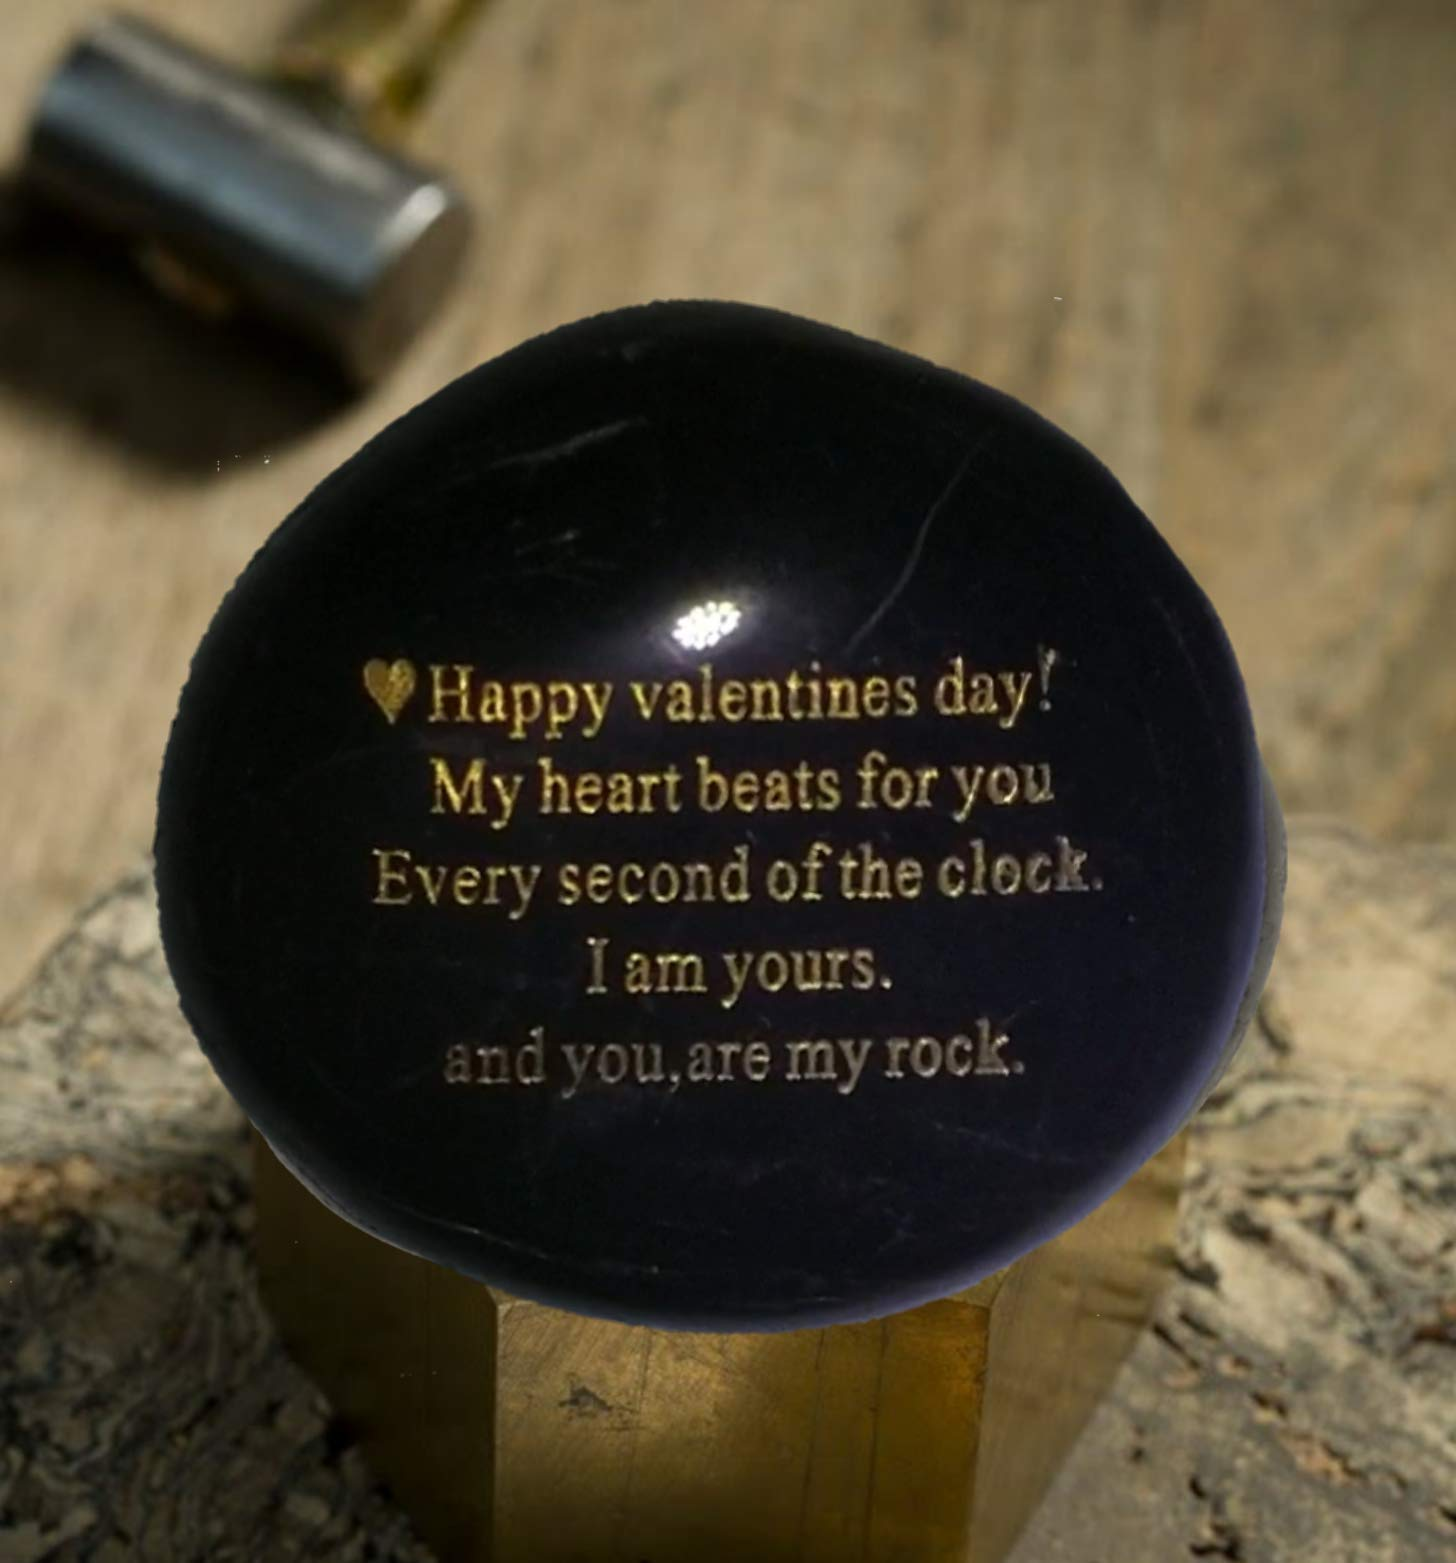 """Probably the Best Valentines Day Gift you can buy""""Happy Valentines Day! My heart Beats for you Every second of the clock. I am yours. And you, are my rock"""" - Engraved Rock"""